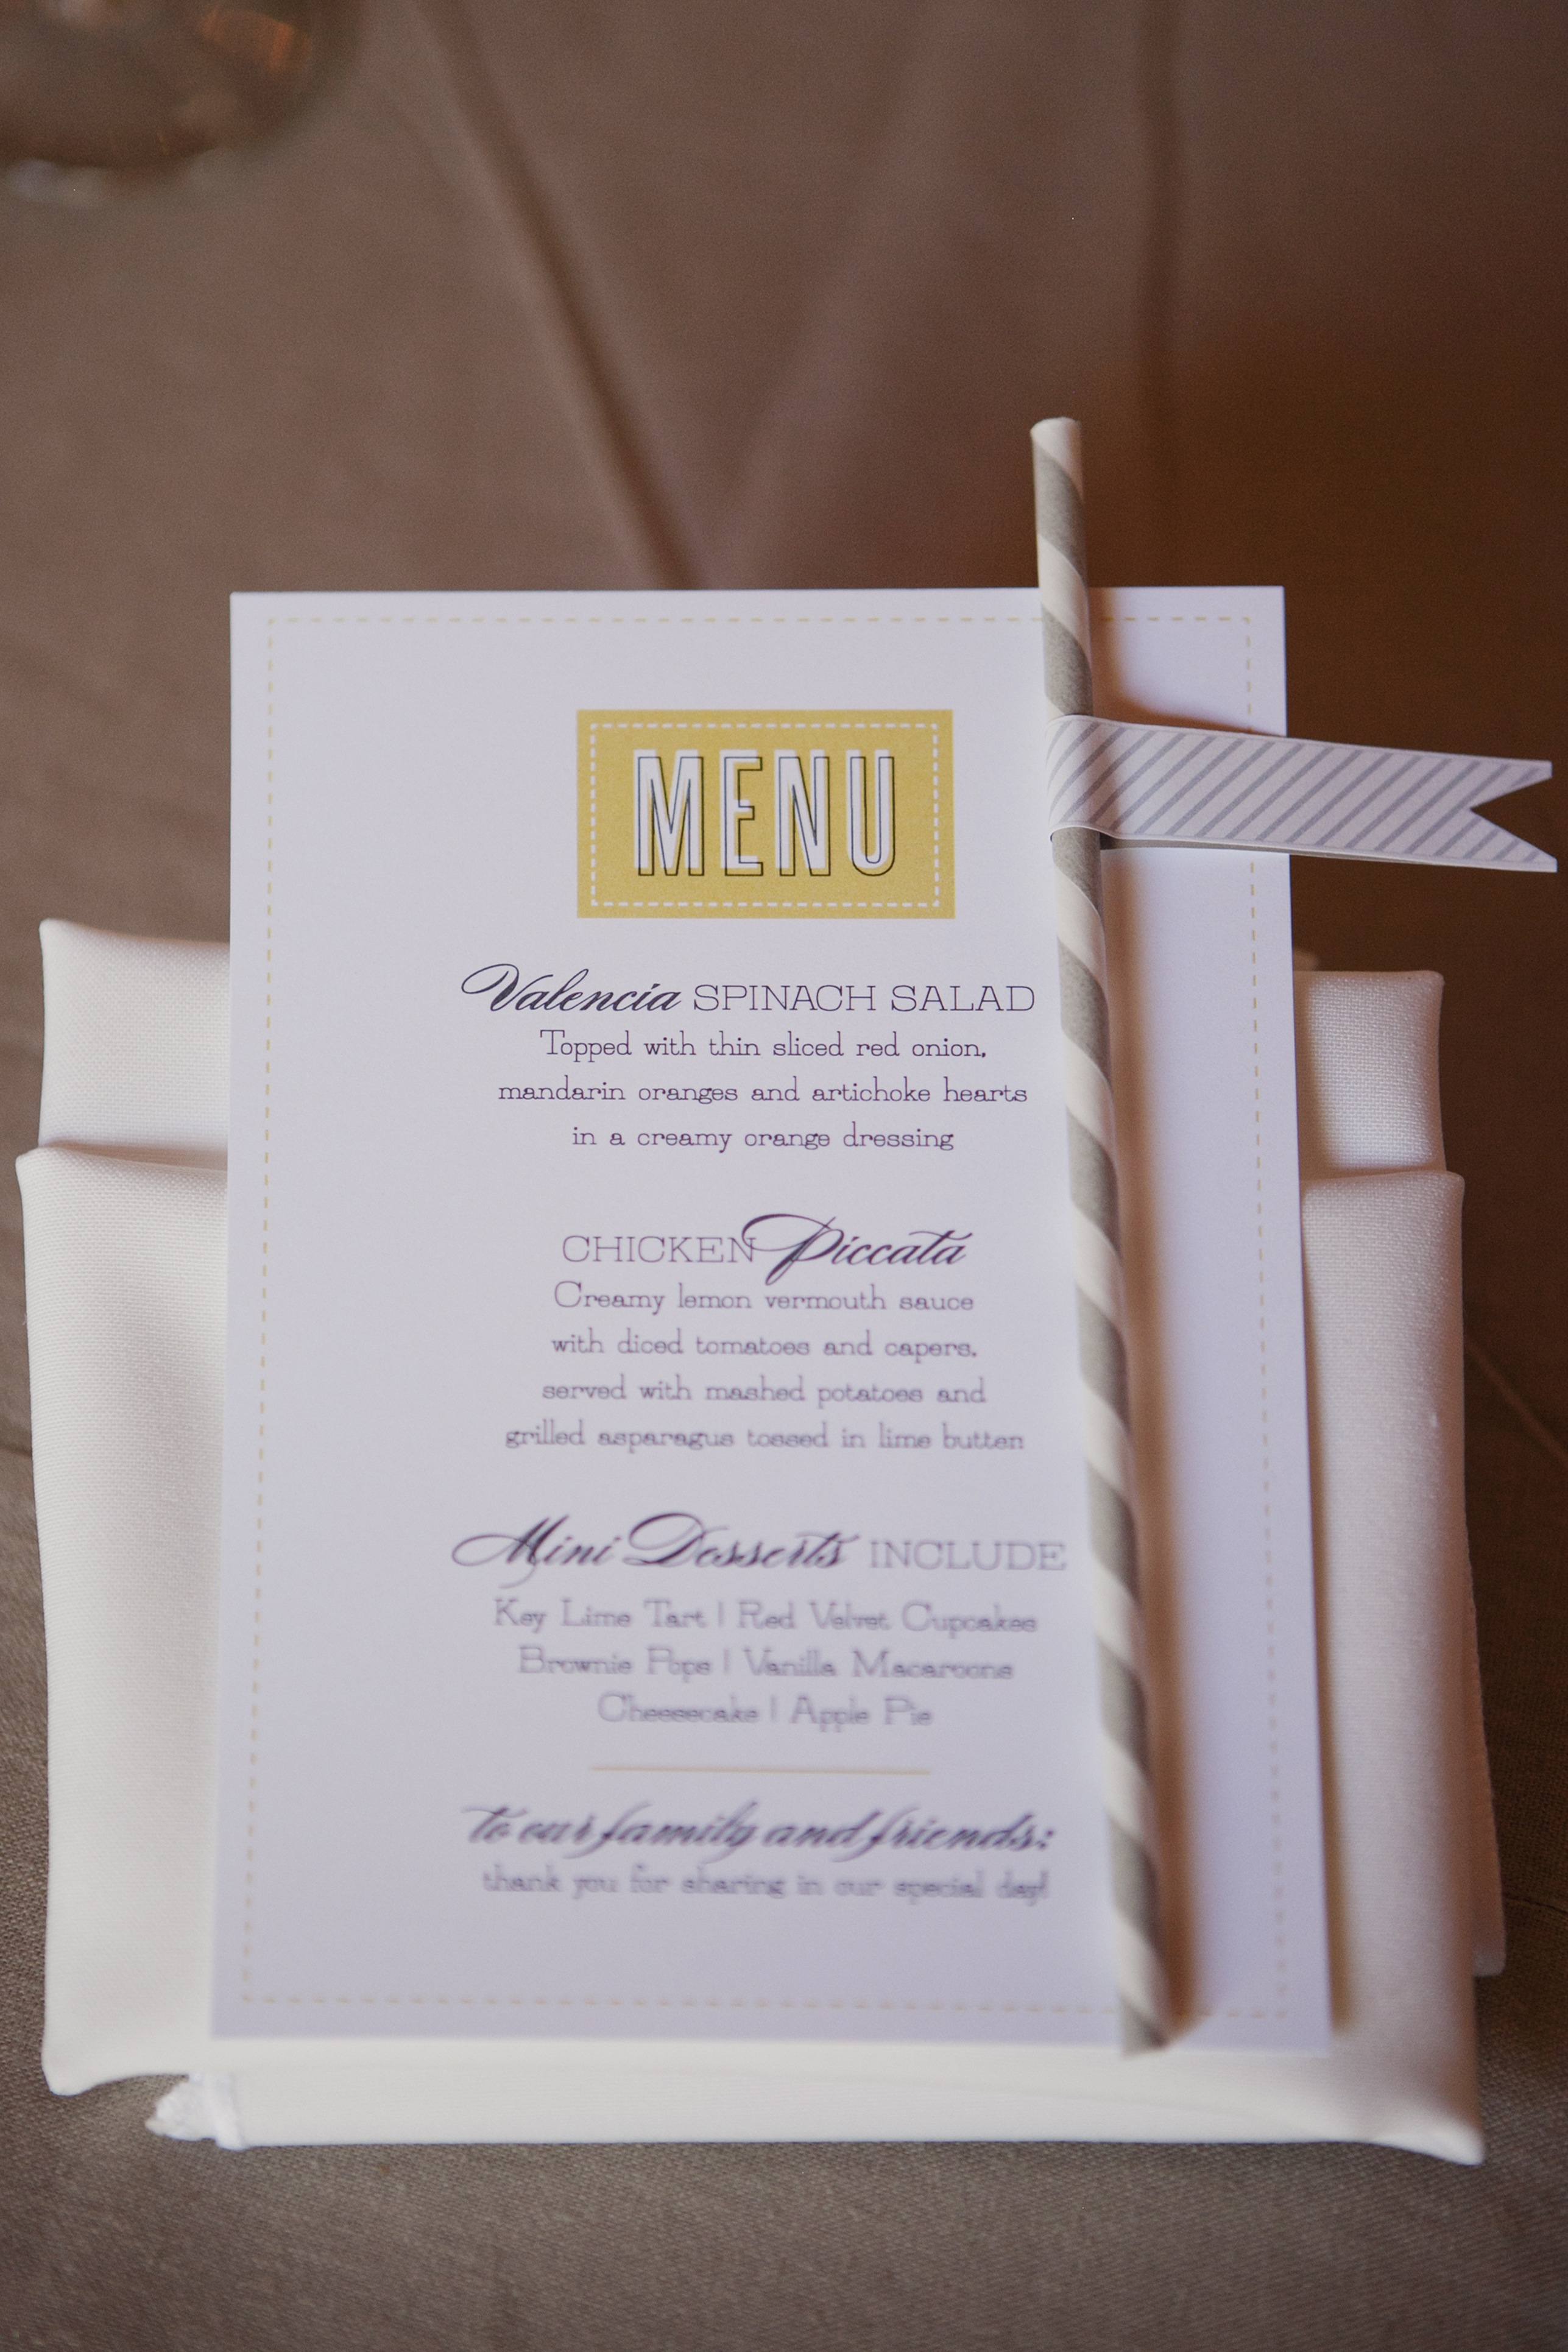 Stationery, Real Weddings, Wedding Style, Menu Cards, Rustic Real Weddings, West Coast Real Weddings, Eco-Friendly Real Weddings, Eco-Friendly Weddings, Rustic Weddings